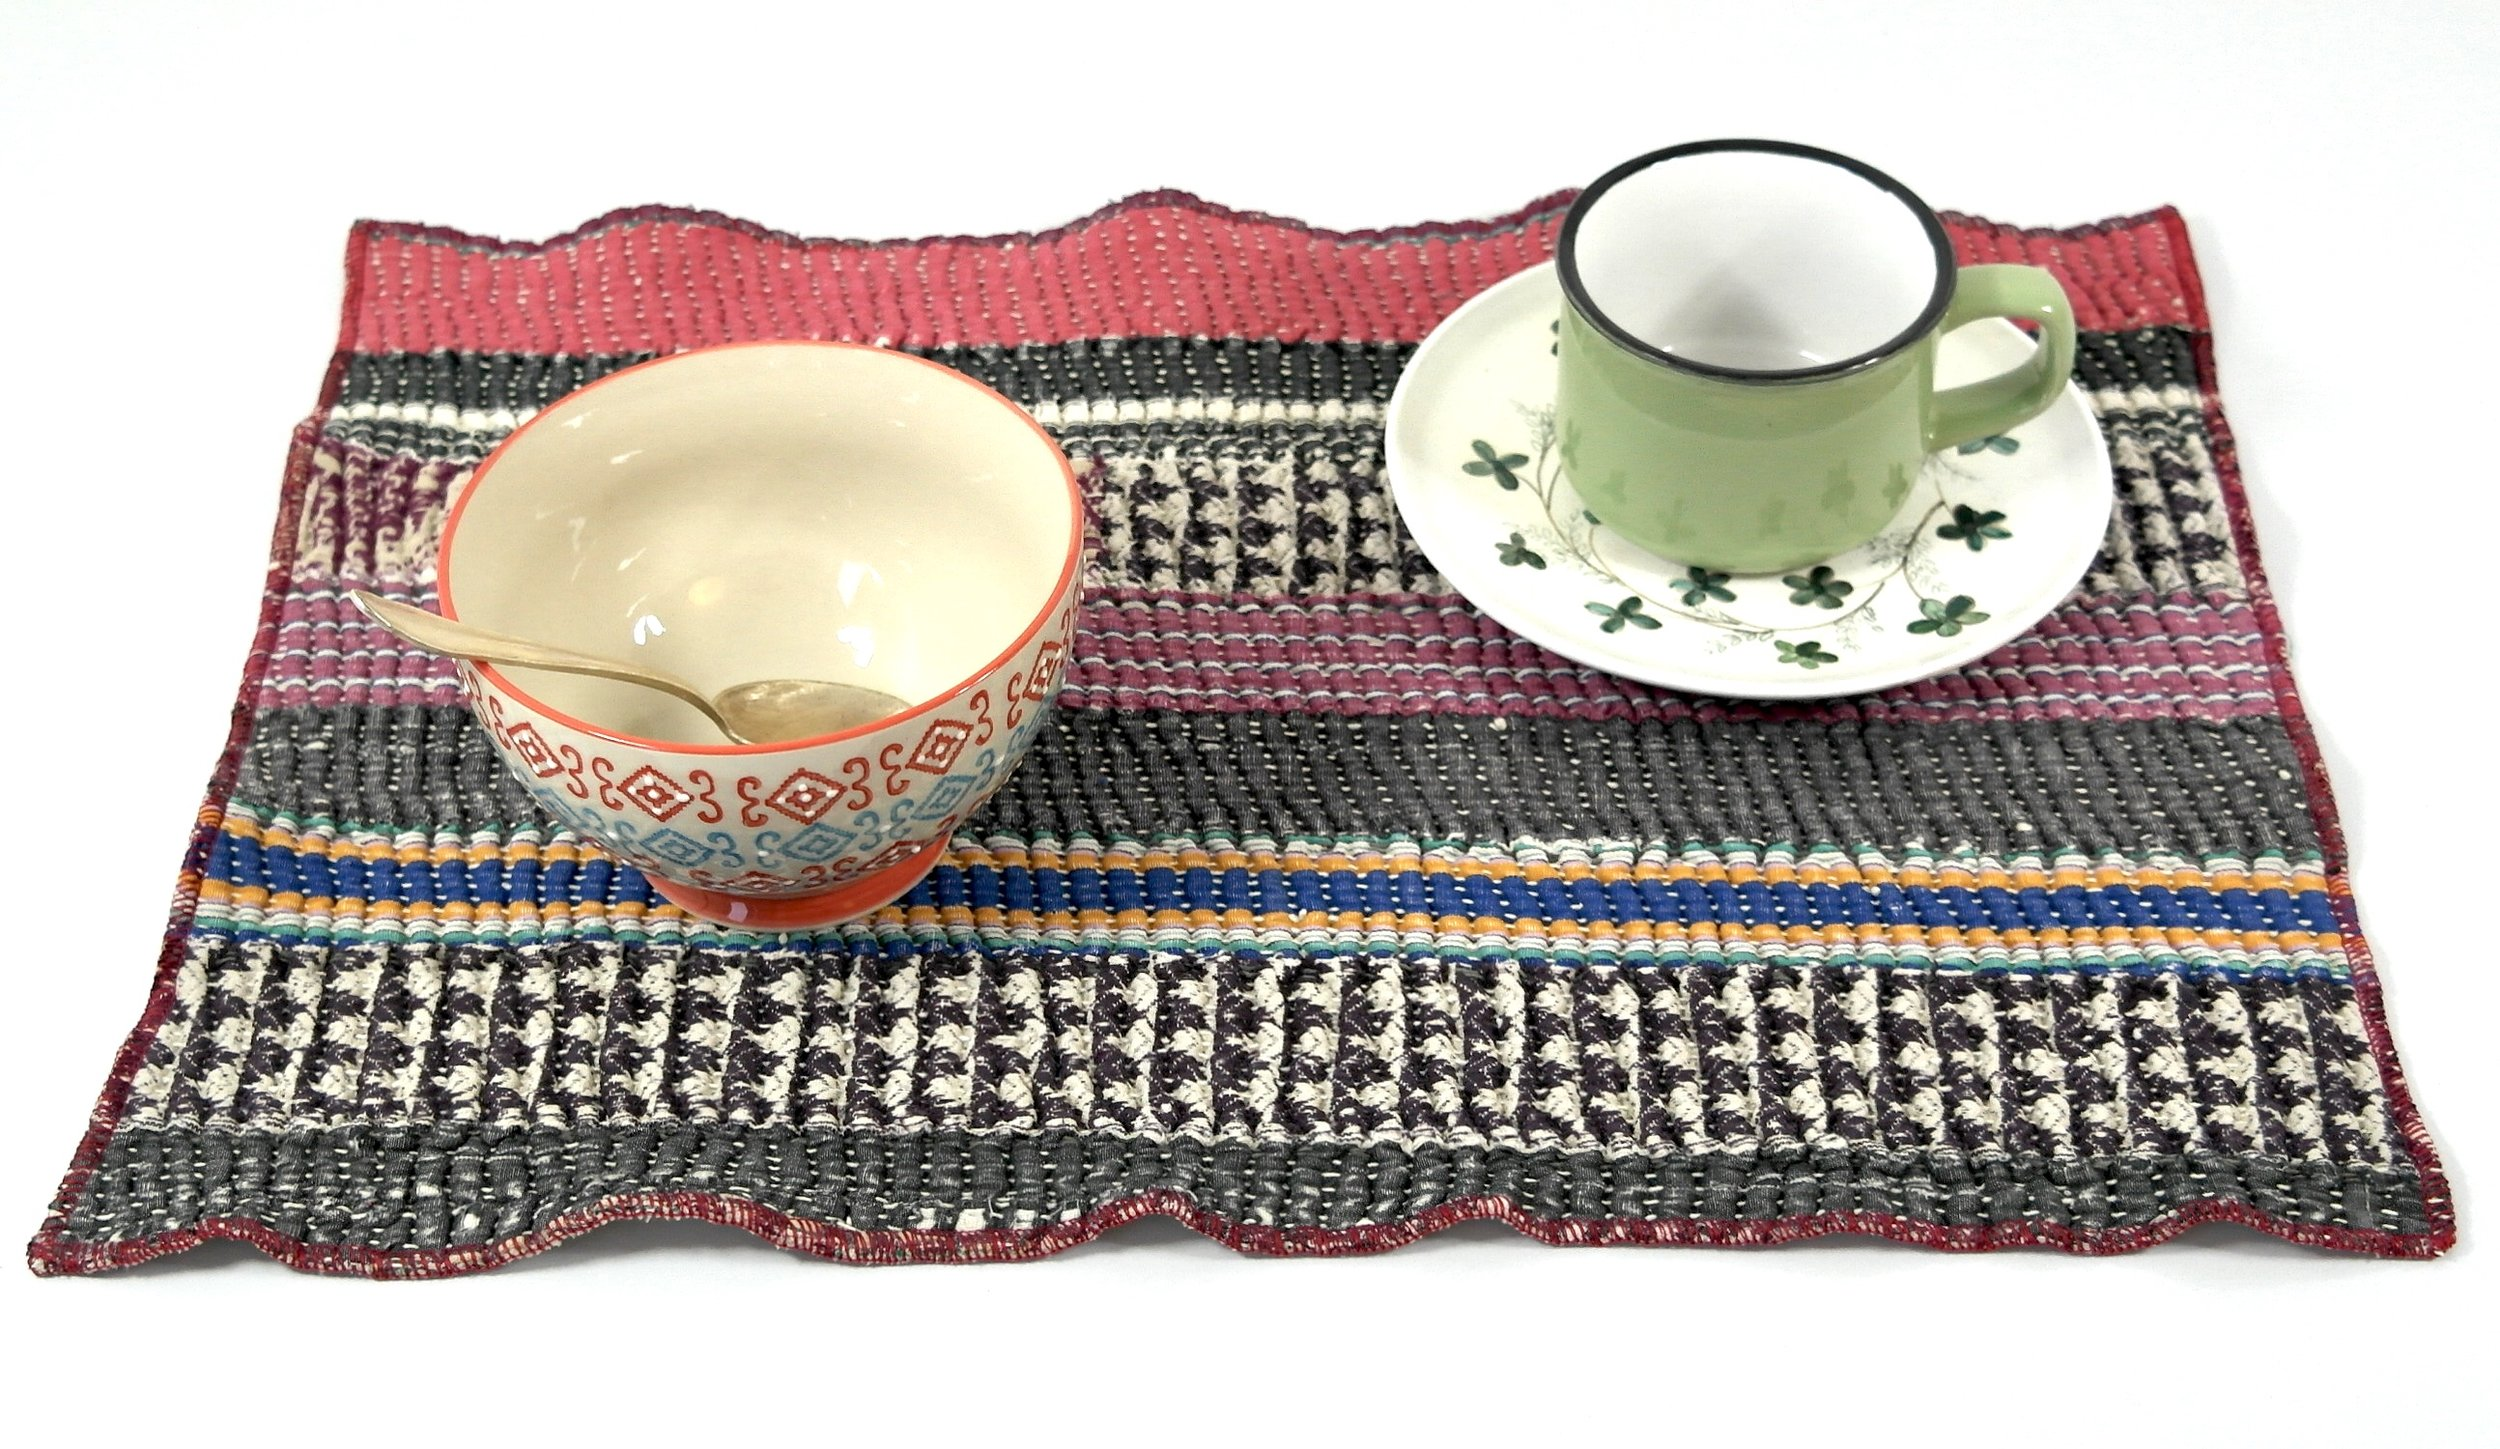 Kantha placemat made from old and thick Kantha quilt